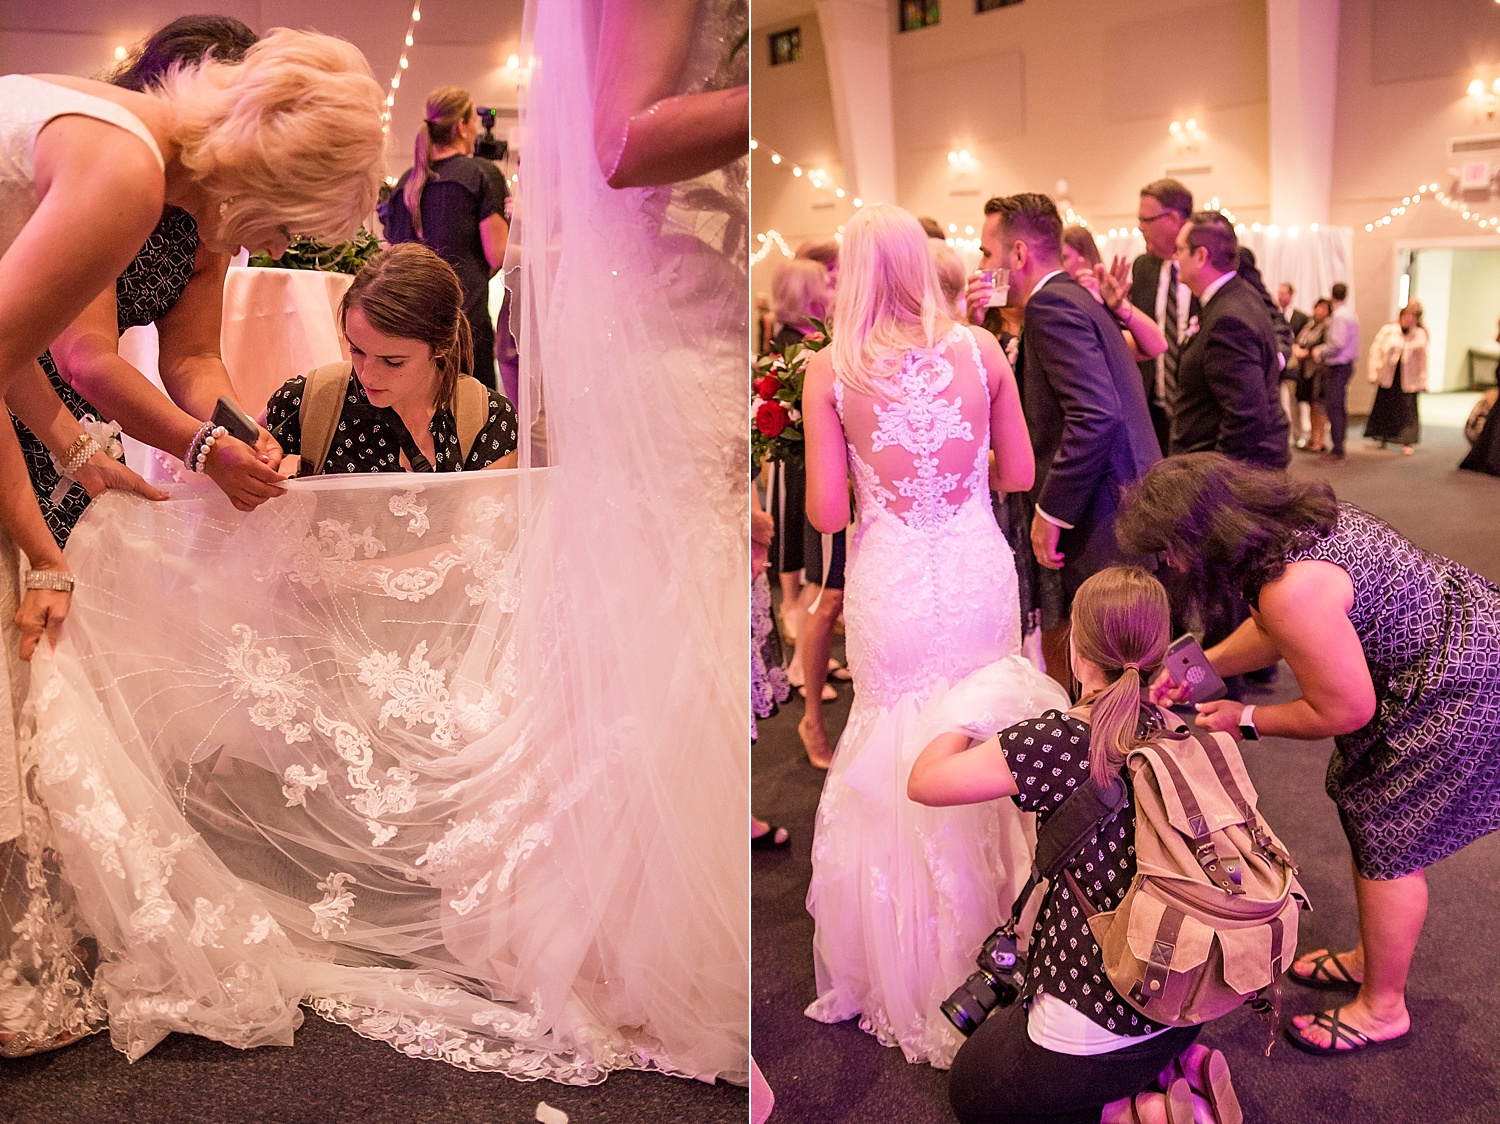 As a wedding photographer, it's also very helpful to know how to bustle a dress. I'm still trying my best to improve on this talent but I lend a hand when I can!